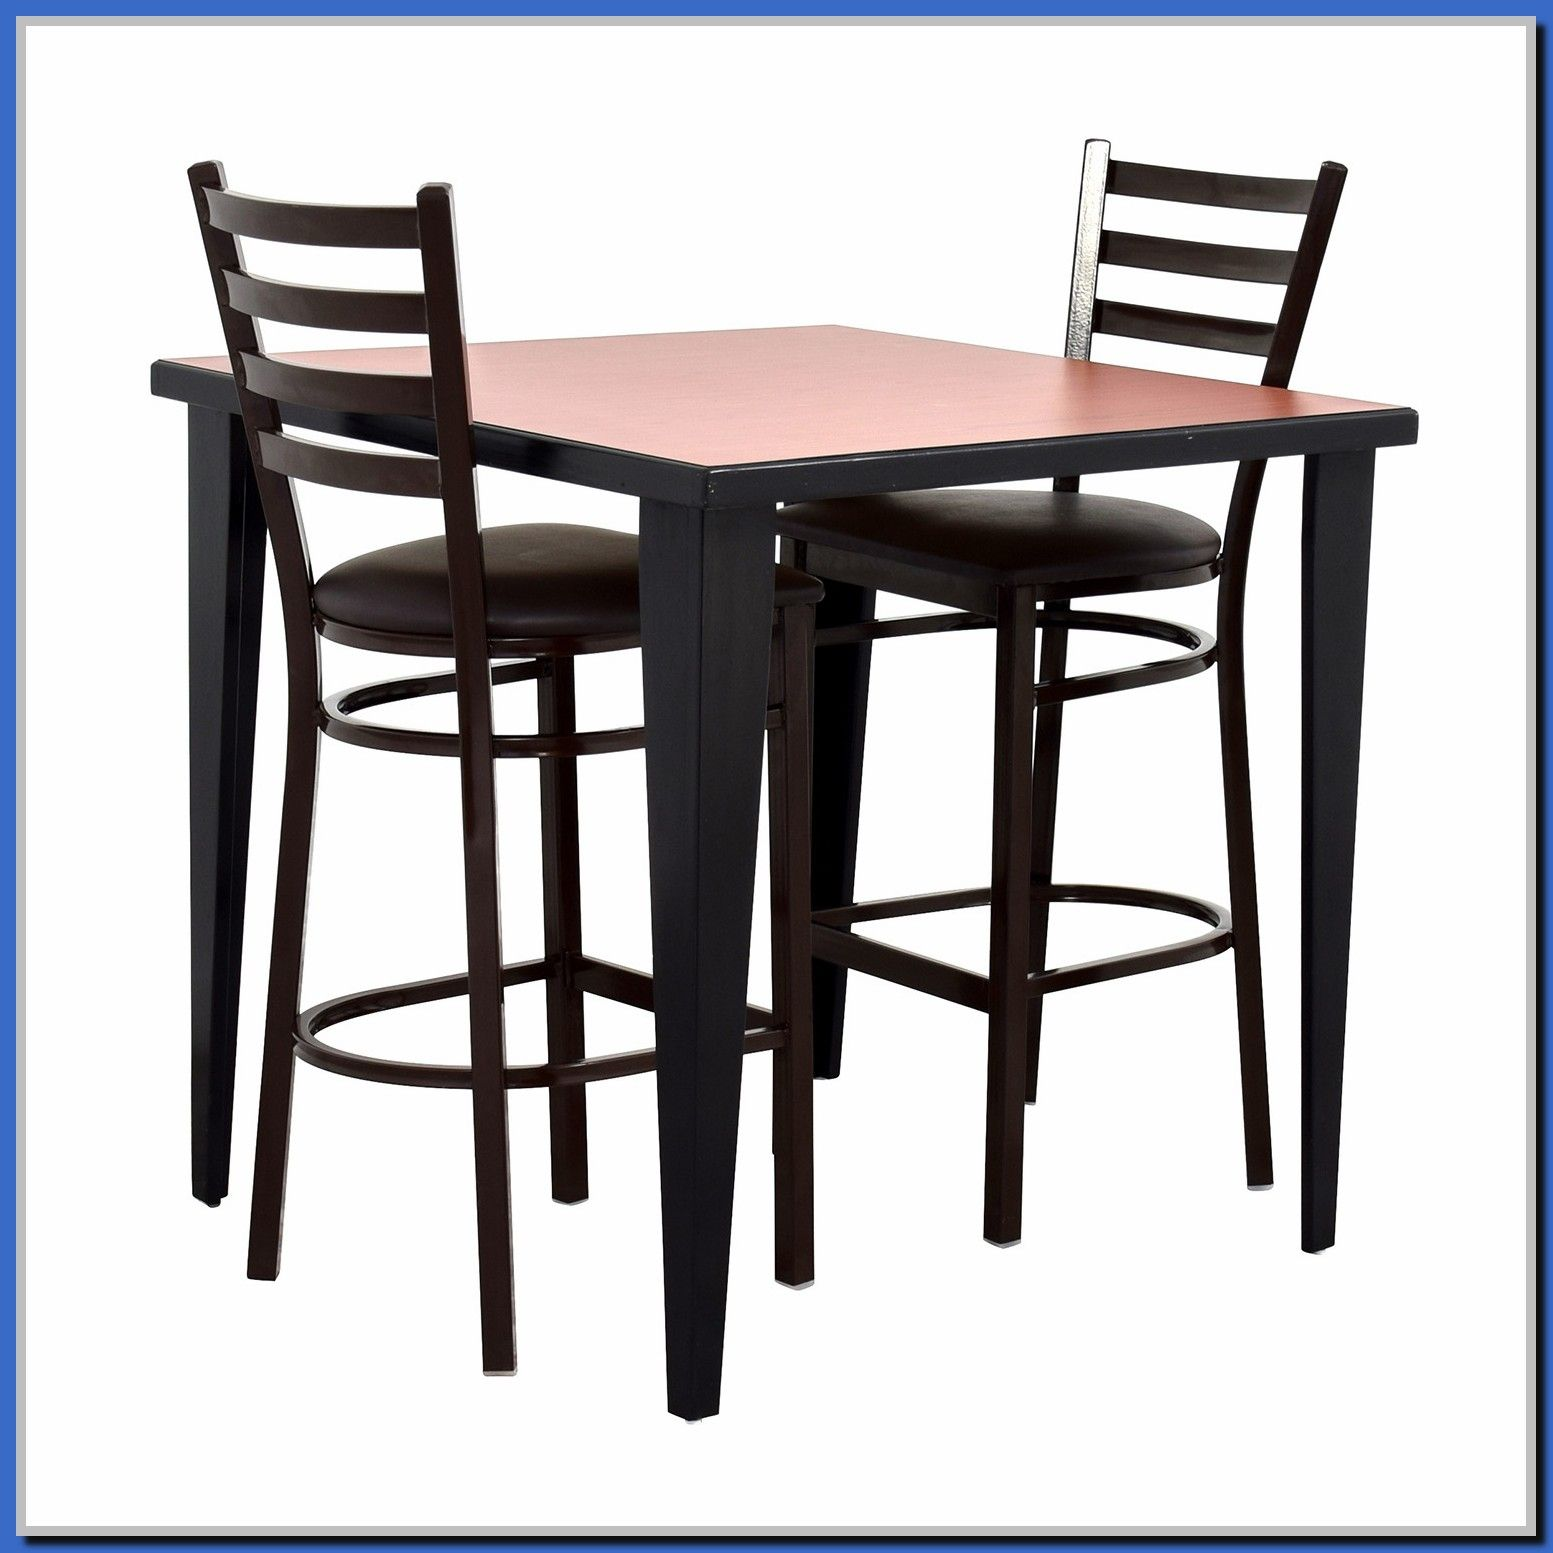 103 Reference Of Two Chair Dining Table In 2020 Counter Height Kitchen Table Dinette Kitchen Table Kitchen Table Settings